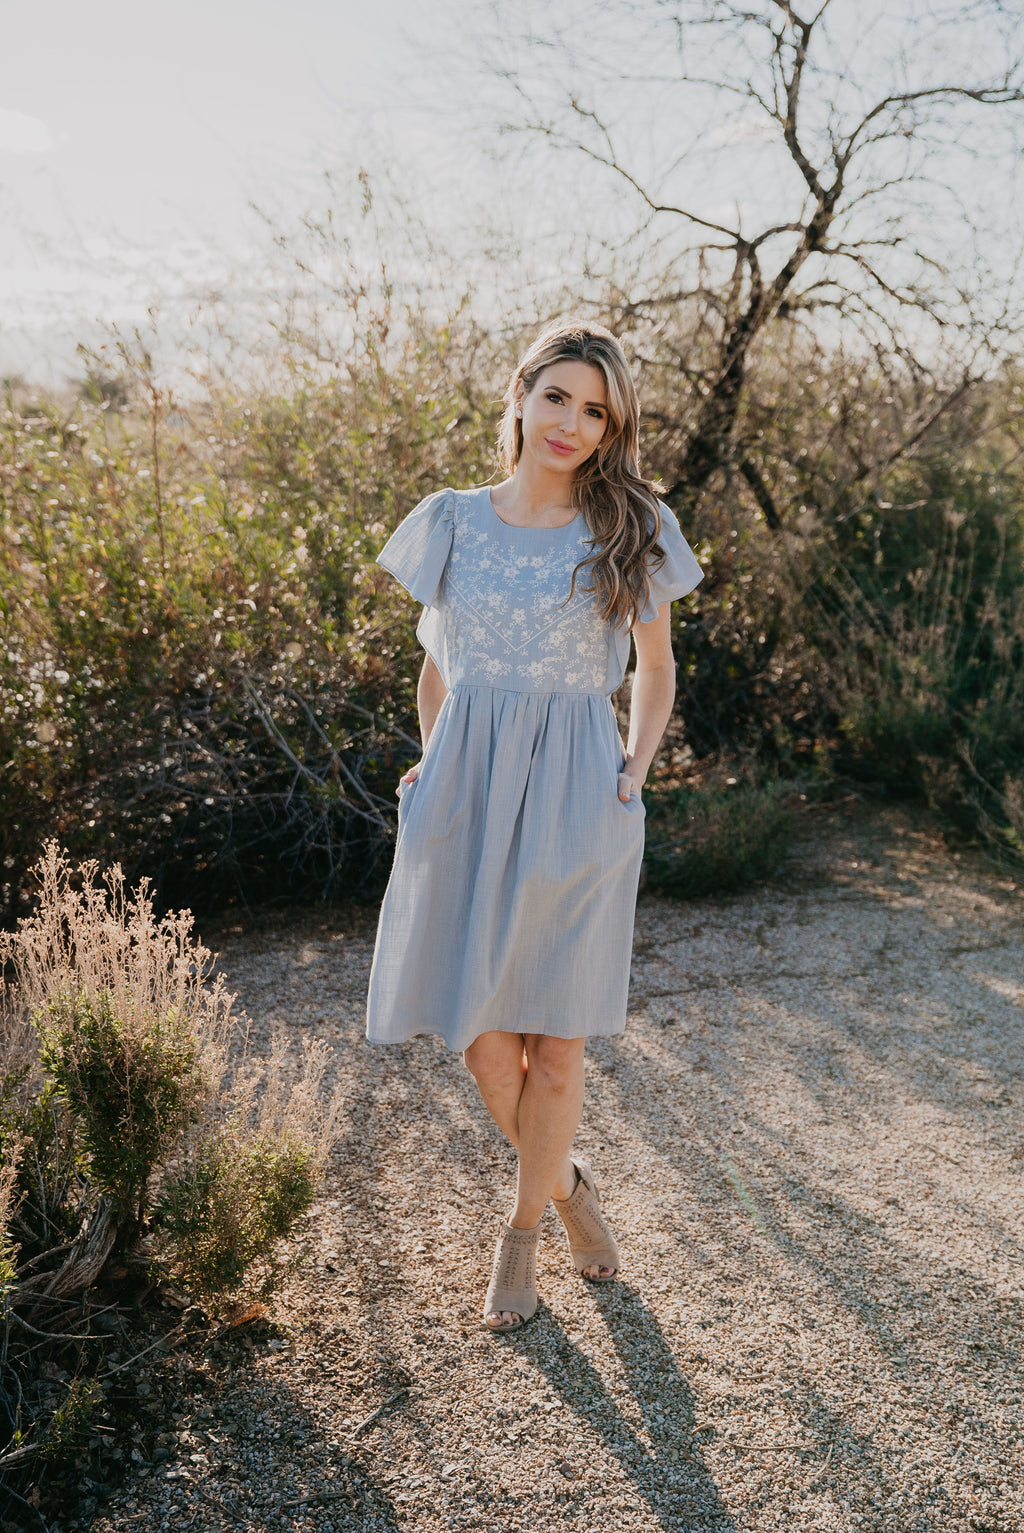 The Breelyn Embroidered Dress in Dusty Blue